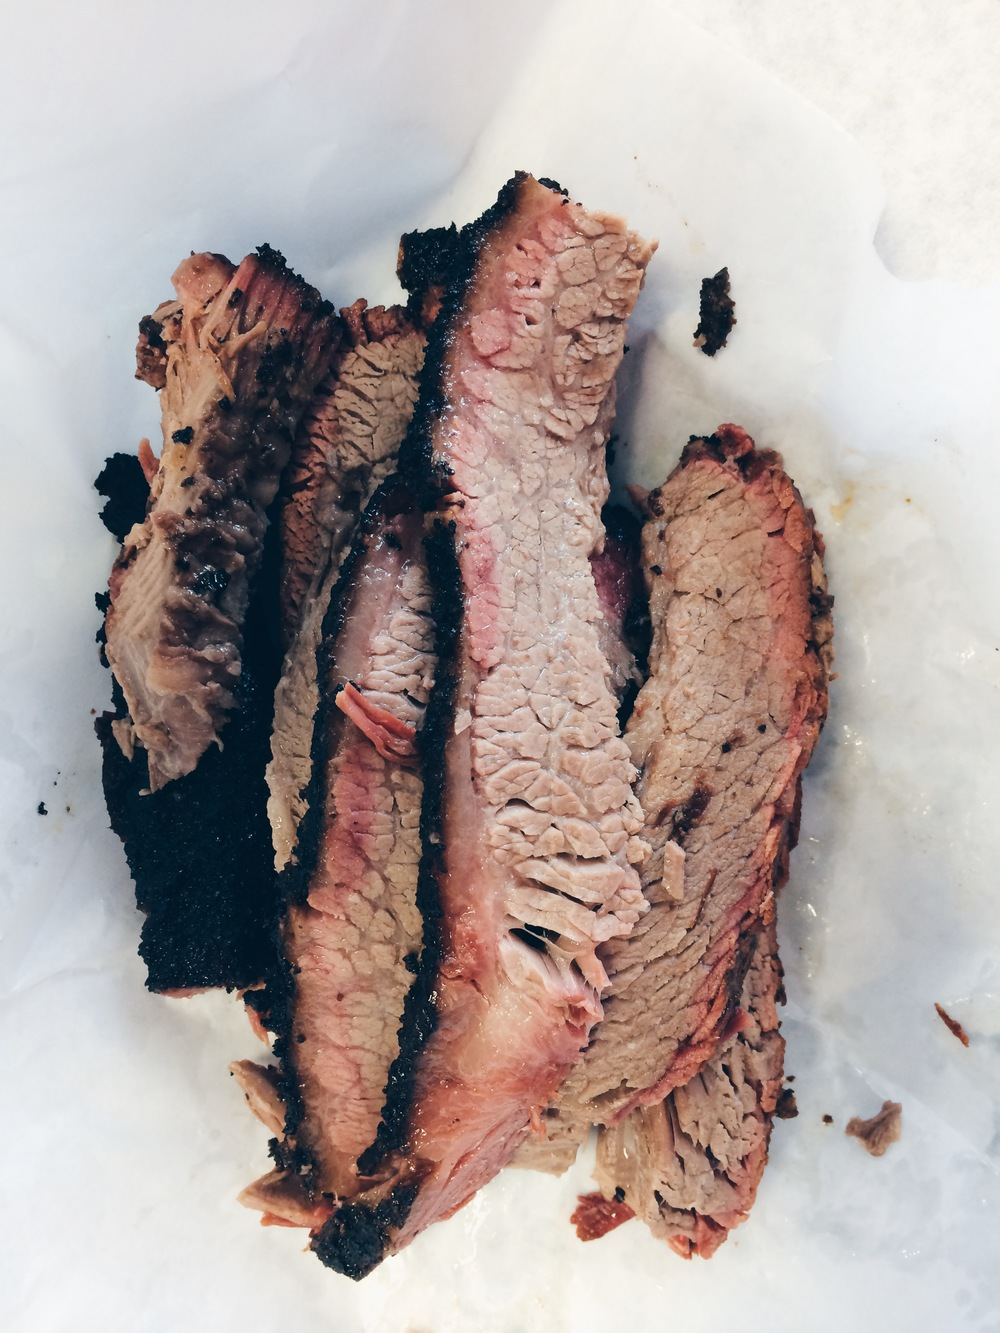 VSCO even makes iPhone shots of brisket look dramatically beautiful.